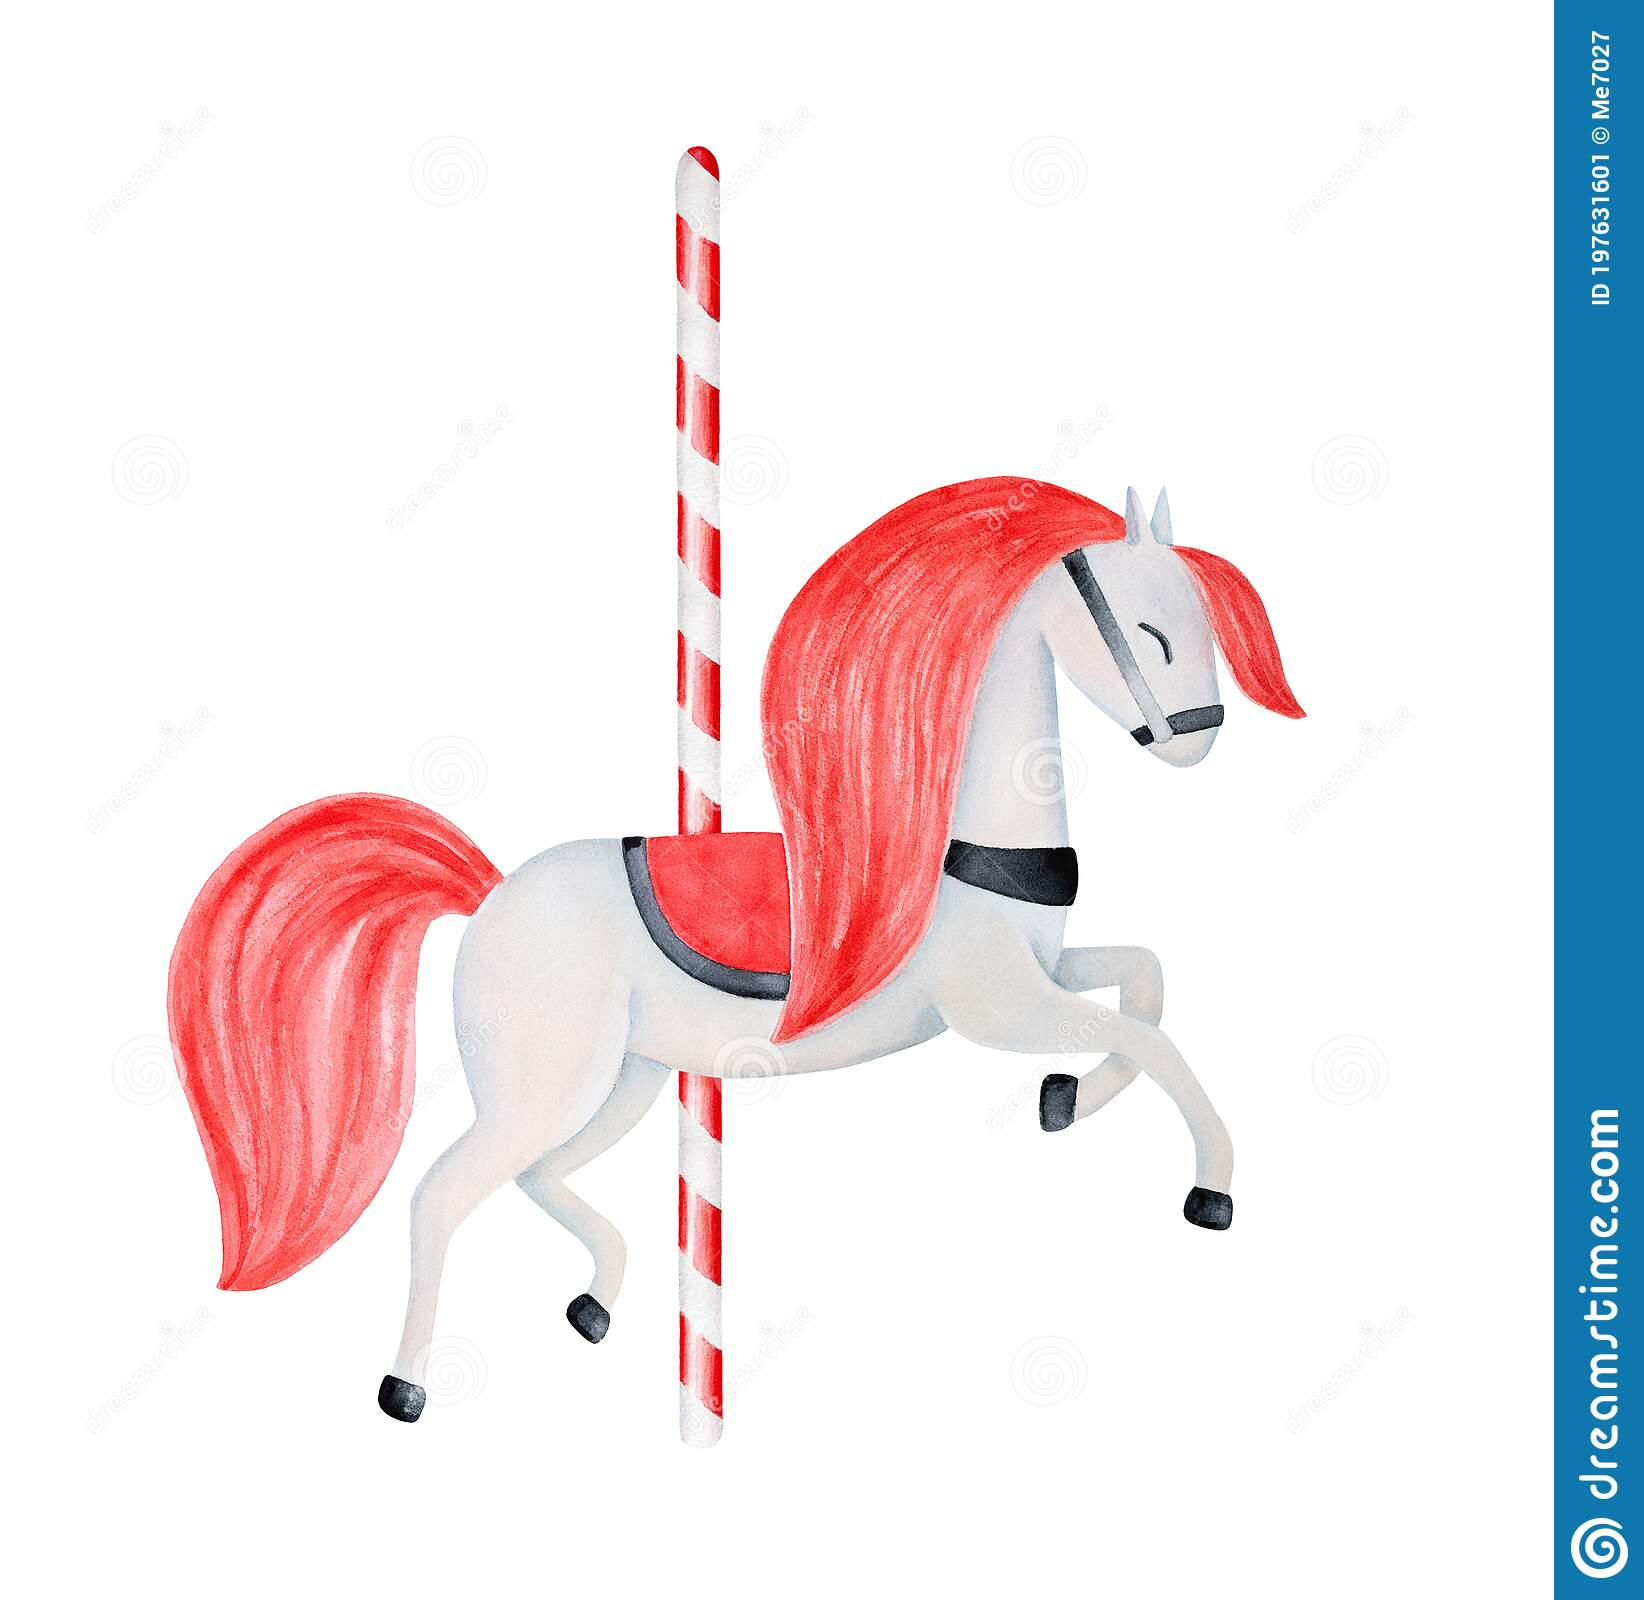 Water Color Sketch Of Joyful Carousel Horse With Bright Red And White Striped Pole Stock Illustration Illustration Of Cartoon Fantasy 197631601